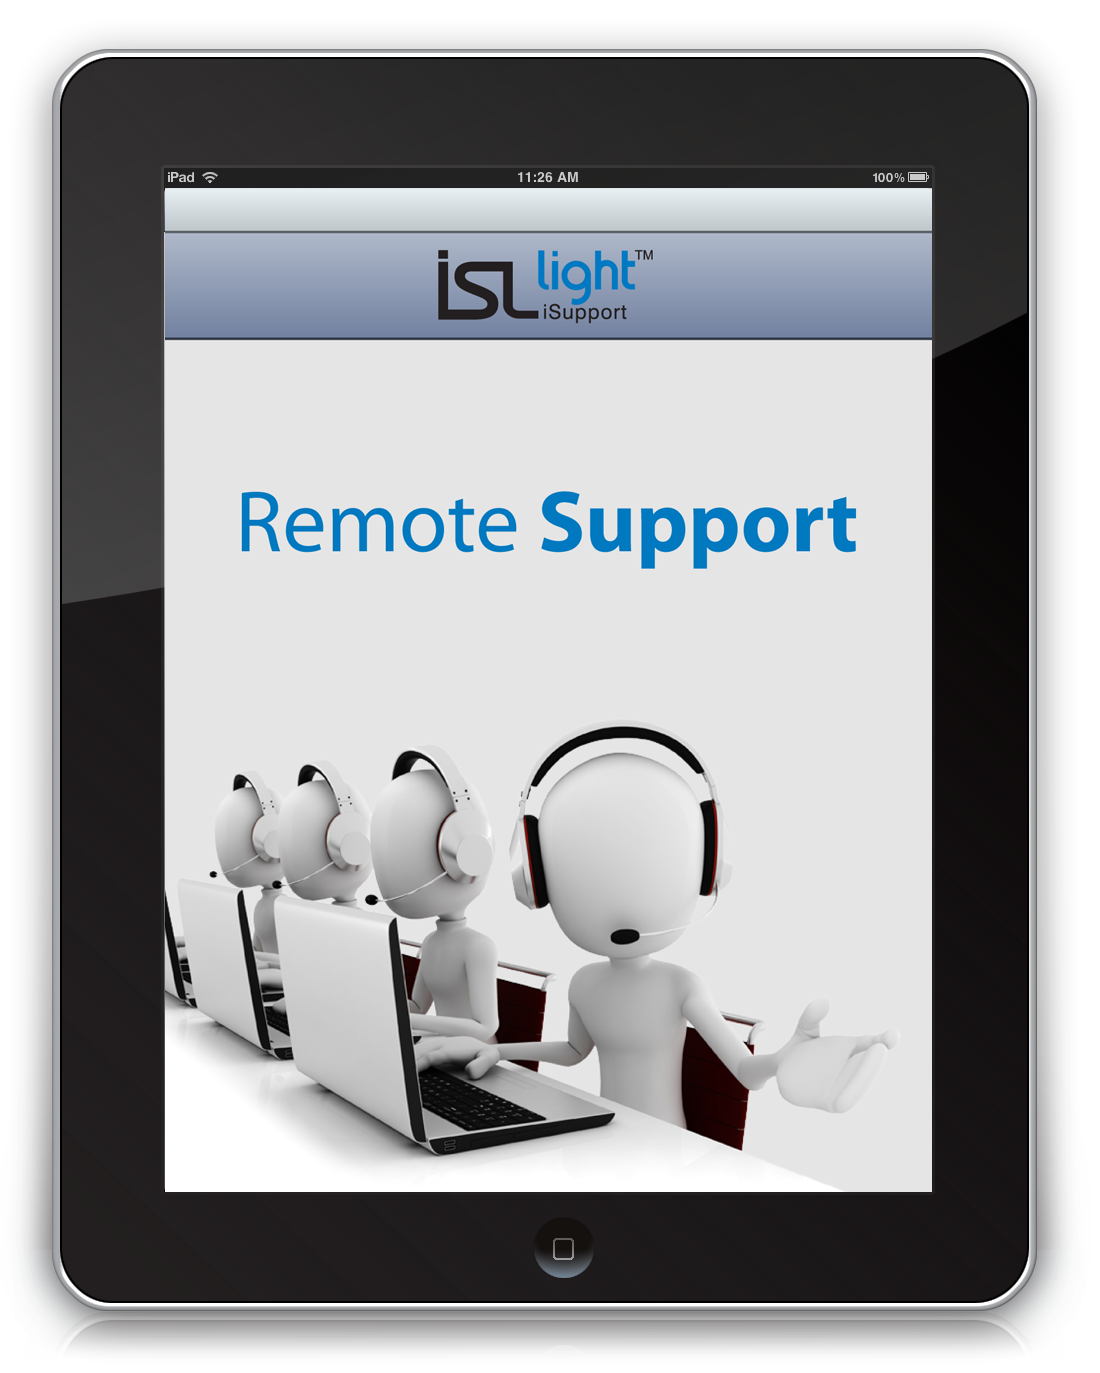 http://islonline.files.wordpress.com/2011/08/isl-light-ios-reaches-10000-remote-desktop-sessions-per-day-in-just-2months.png